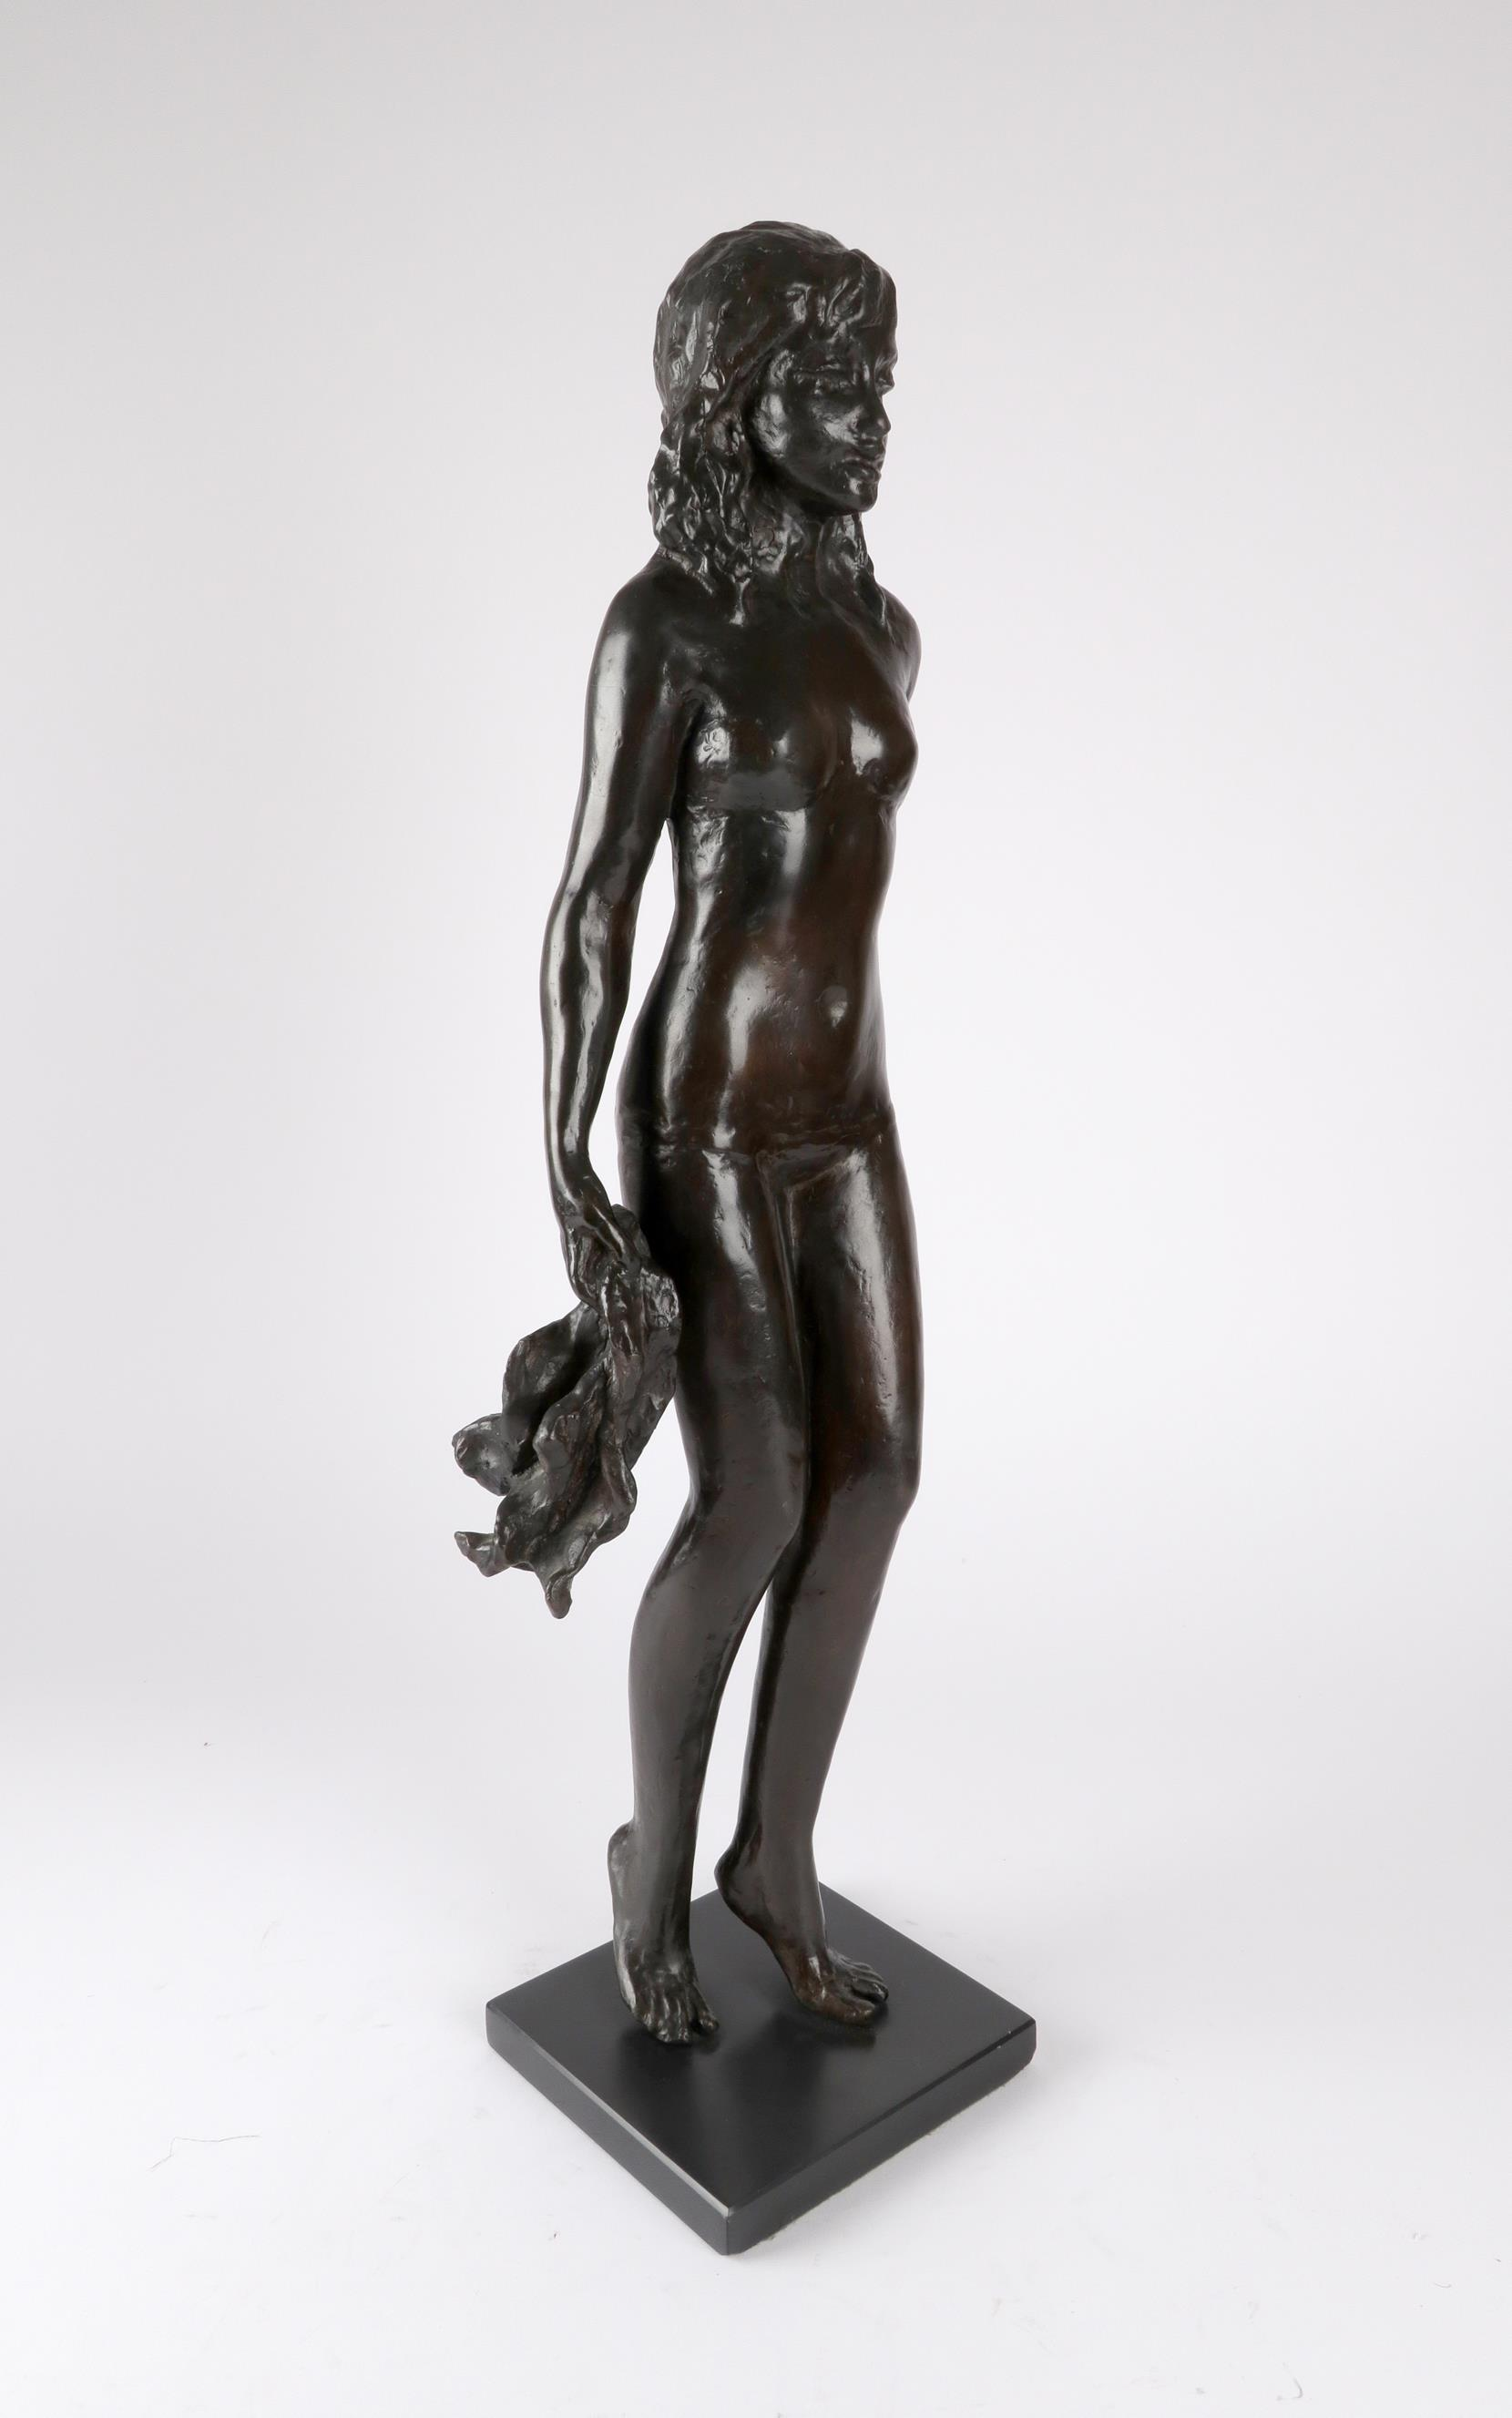 ‡Sydney Harpley RA, FRBS (1927-1992) Towel girl Signed and numbered Harpley/2/9 (to towel) Bronze on - Image 4 of 4